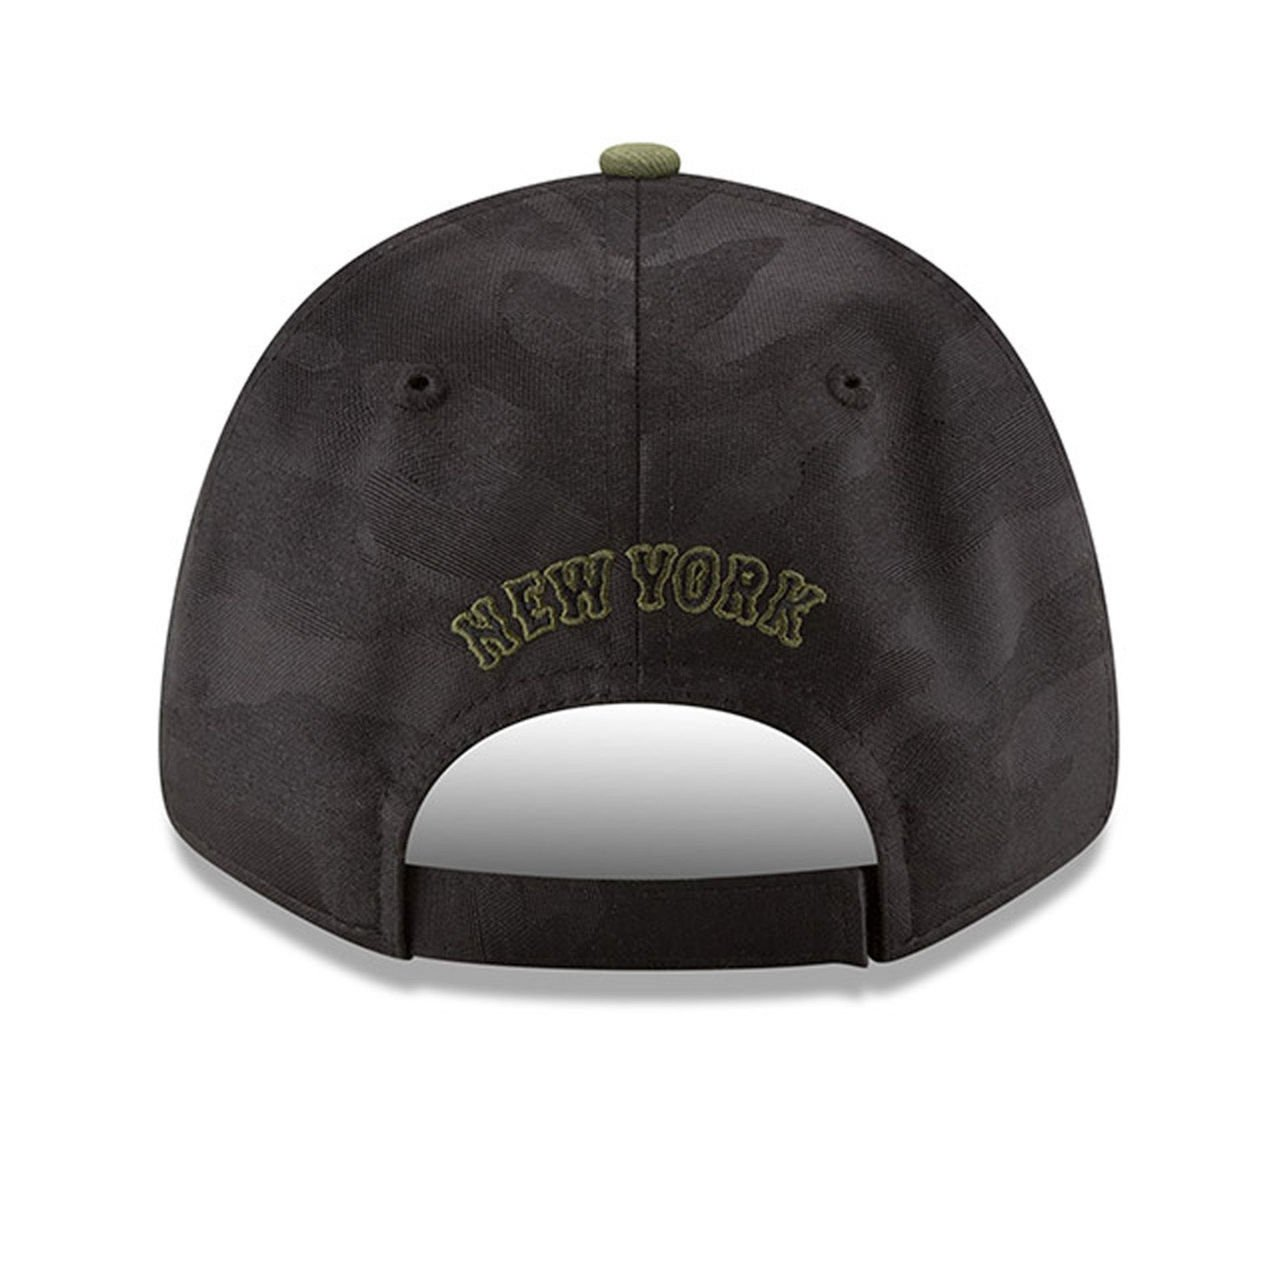 8e6d05805e3 Amazon.com  New Era York Mets 2018 Memorial Day 9FORTY Adjustable Hat   Clothing